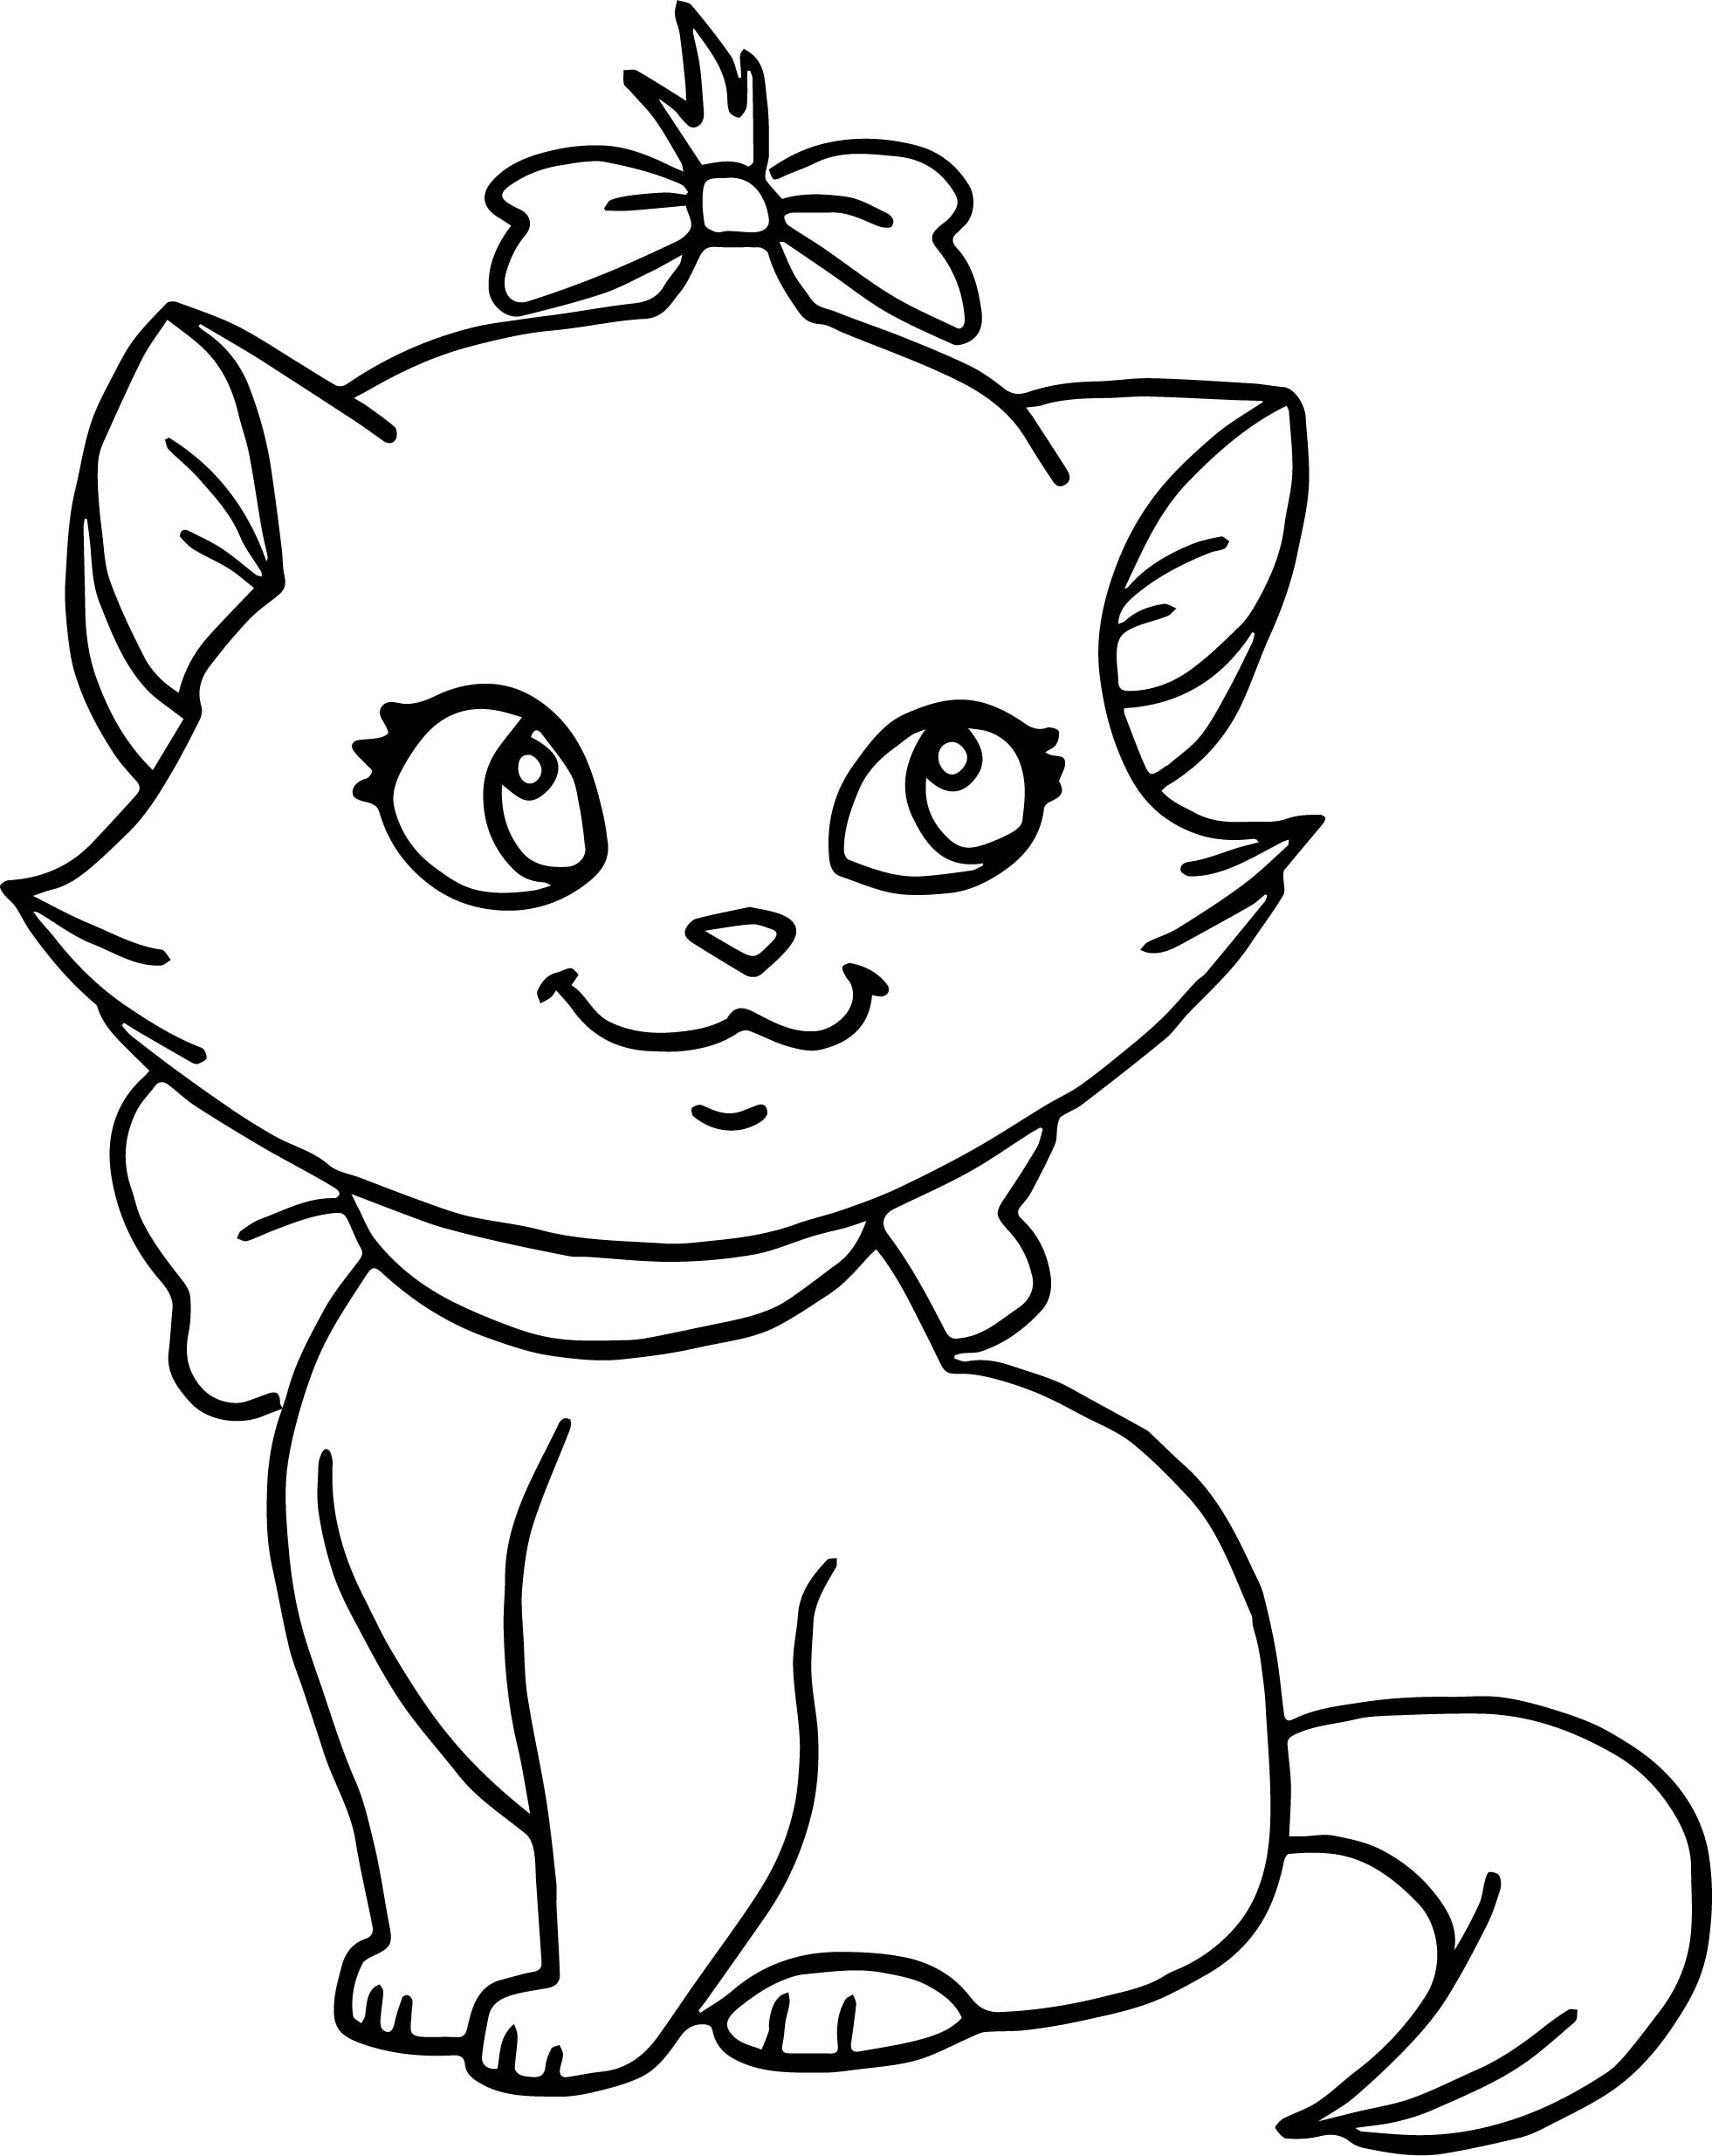 A Very Cute Little Dog Coloring Page Pages Sketch Coloring Page